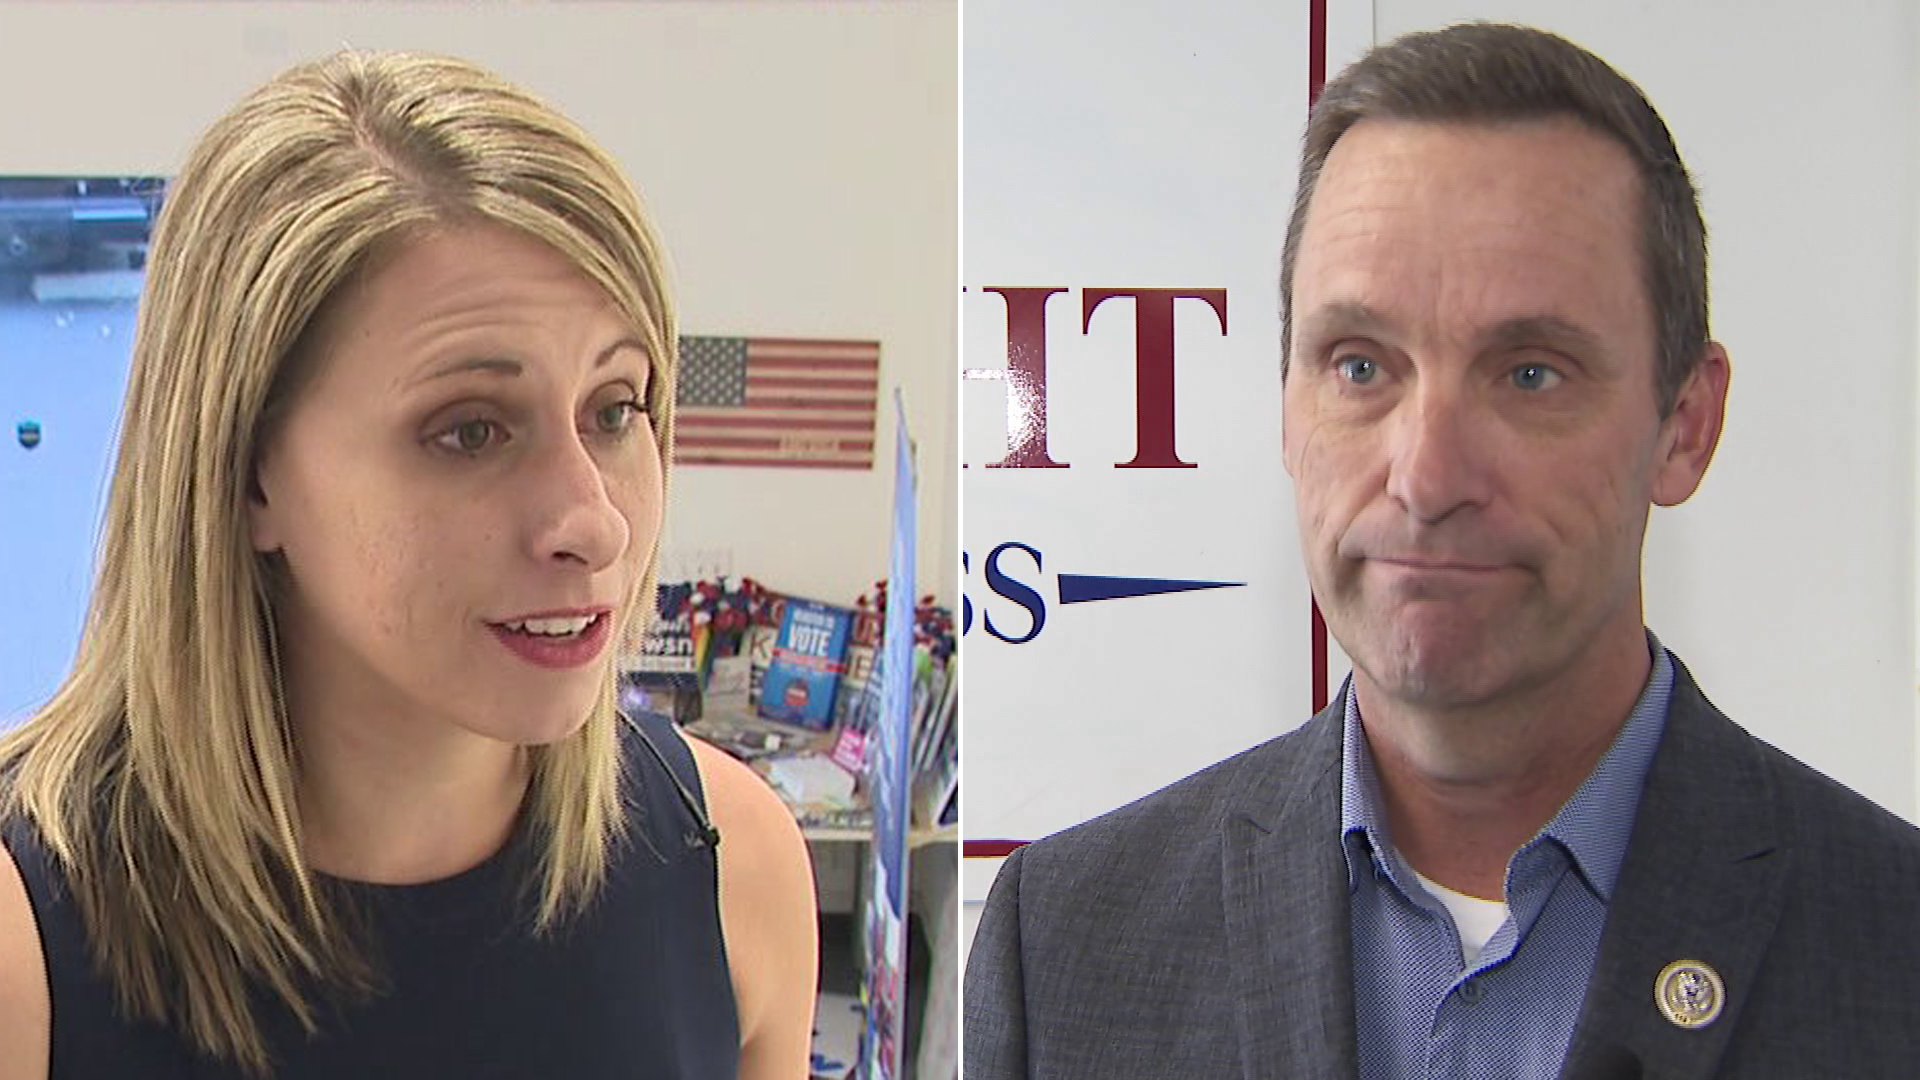 Katie Hill, left, and Steve Knight, speak about their campaigns in October 2018. (Credit: KTLA)